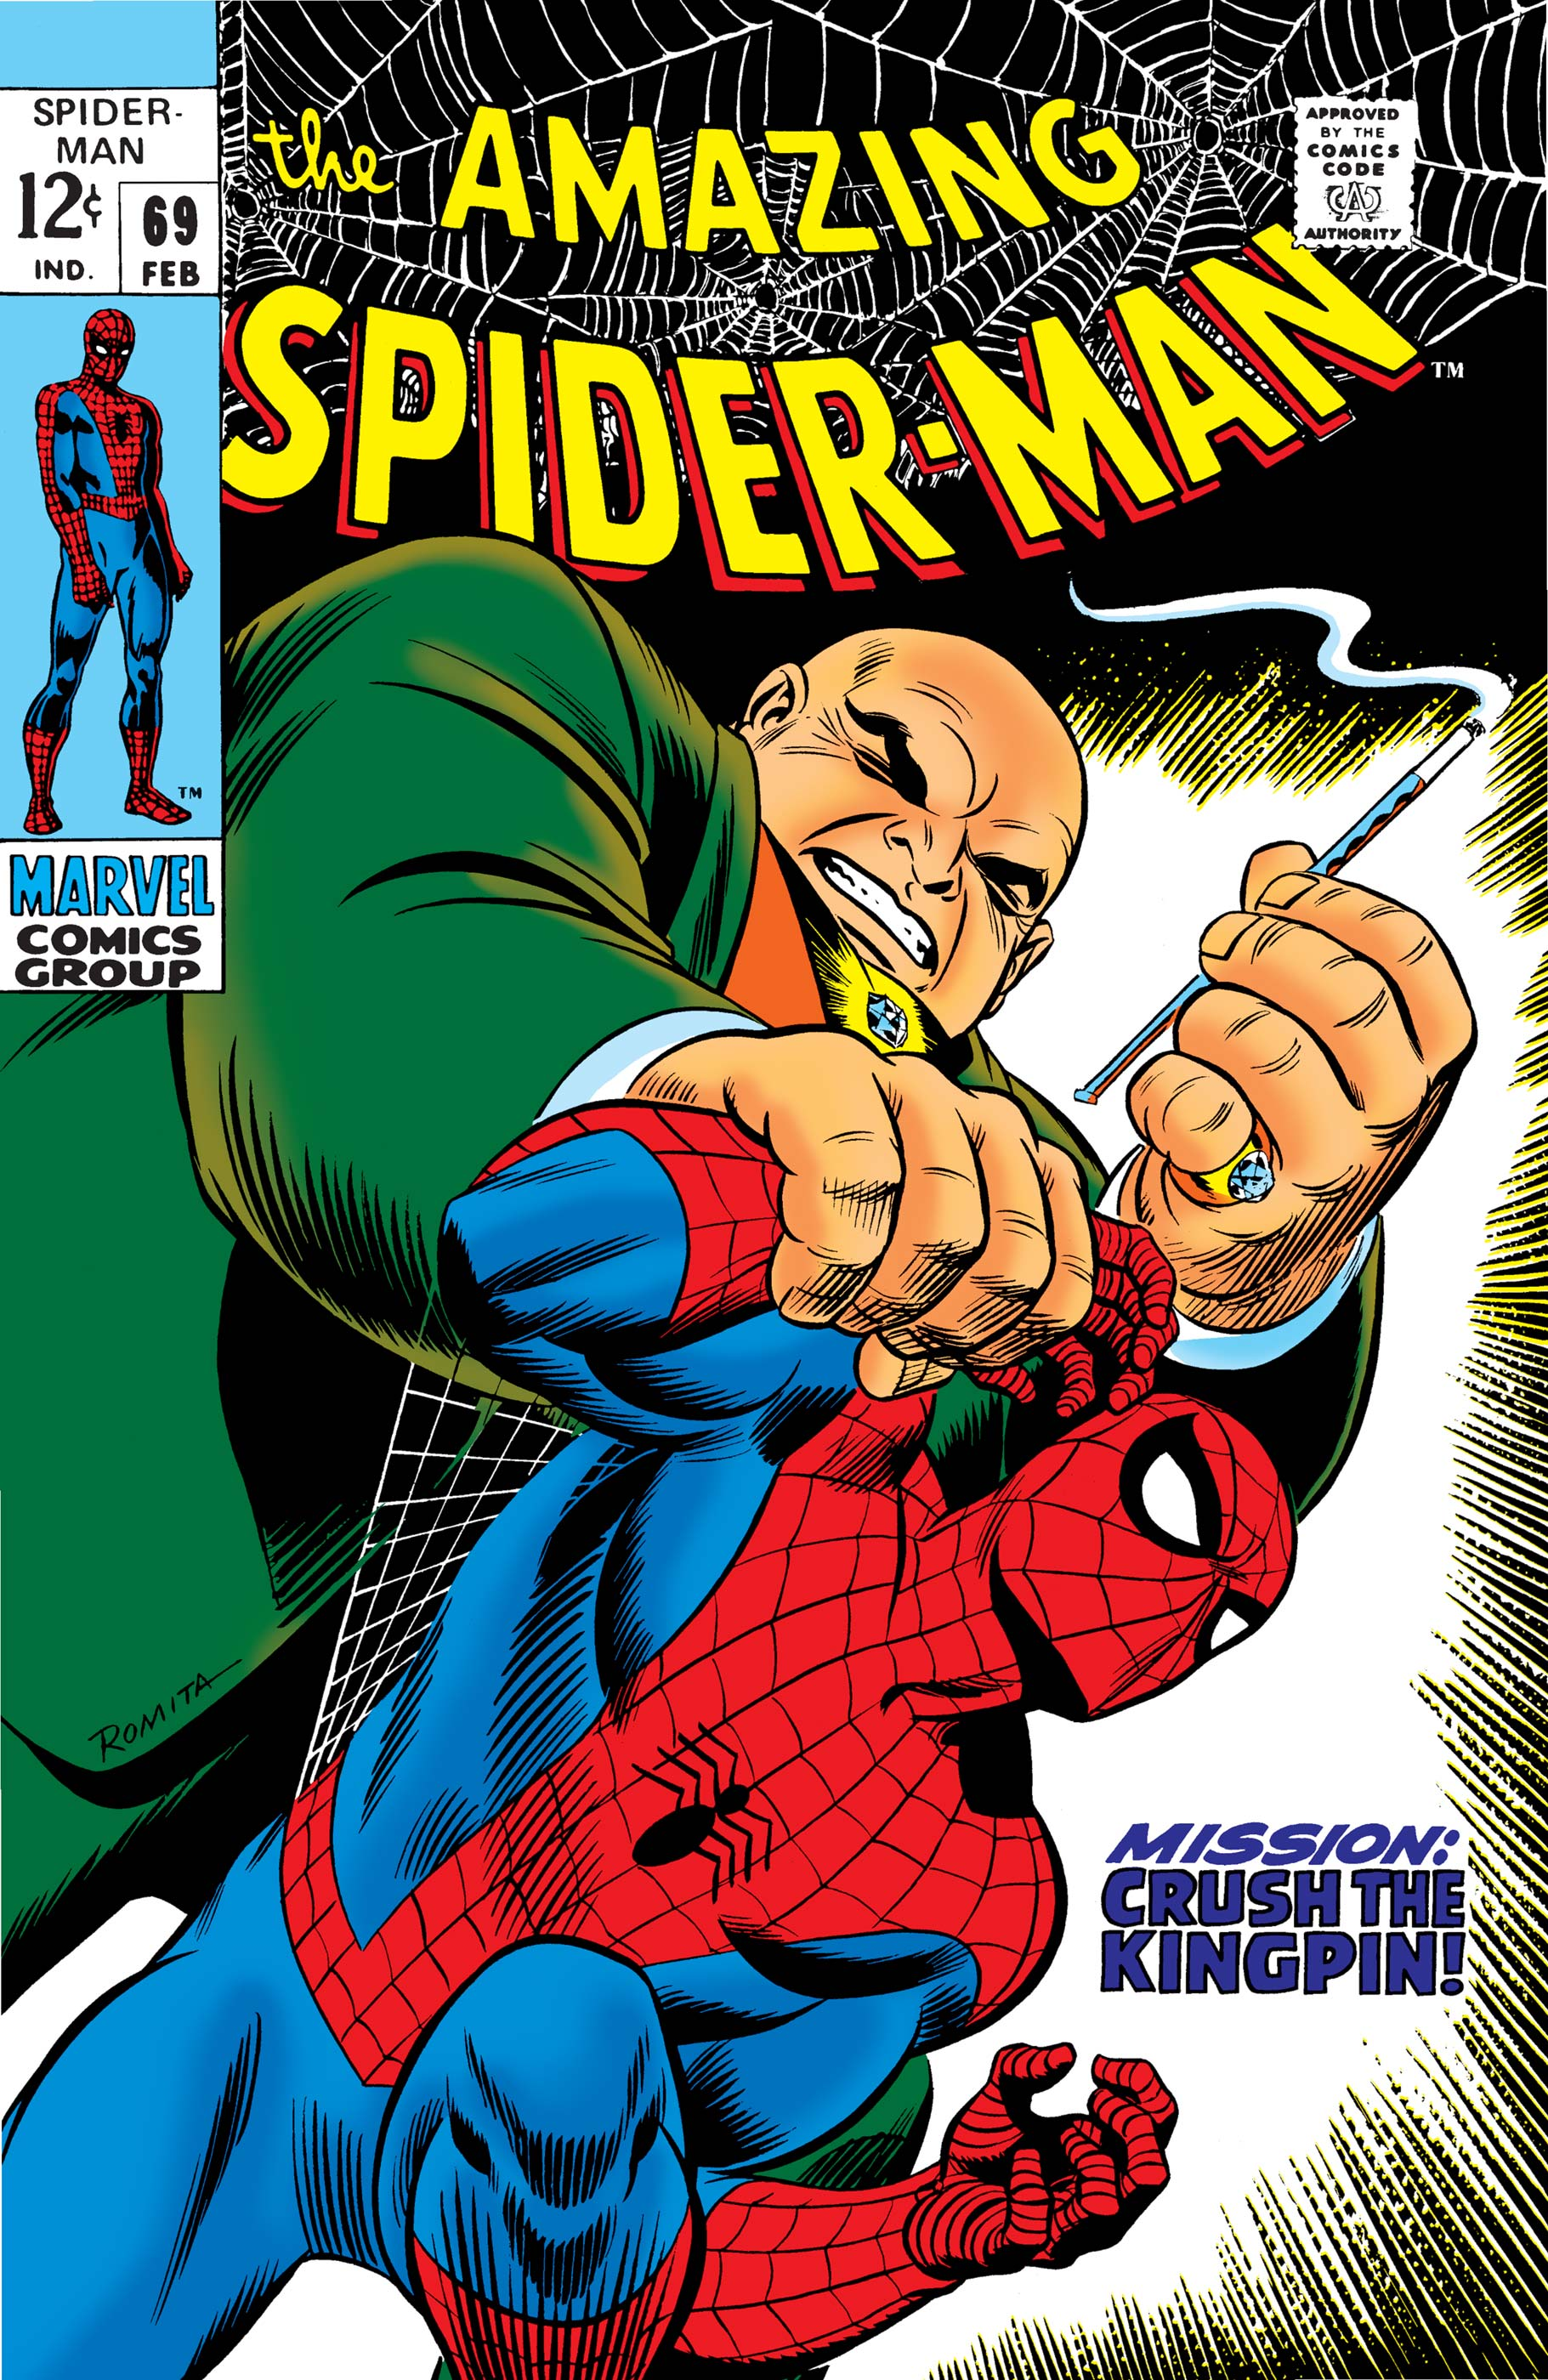 The Amazing Spider-Man (1963) #69